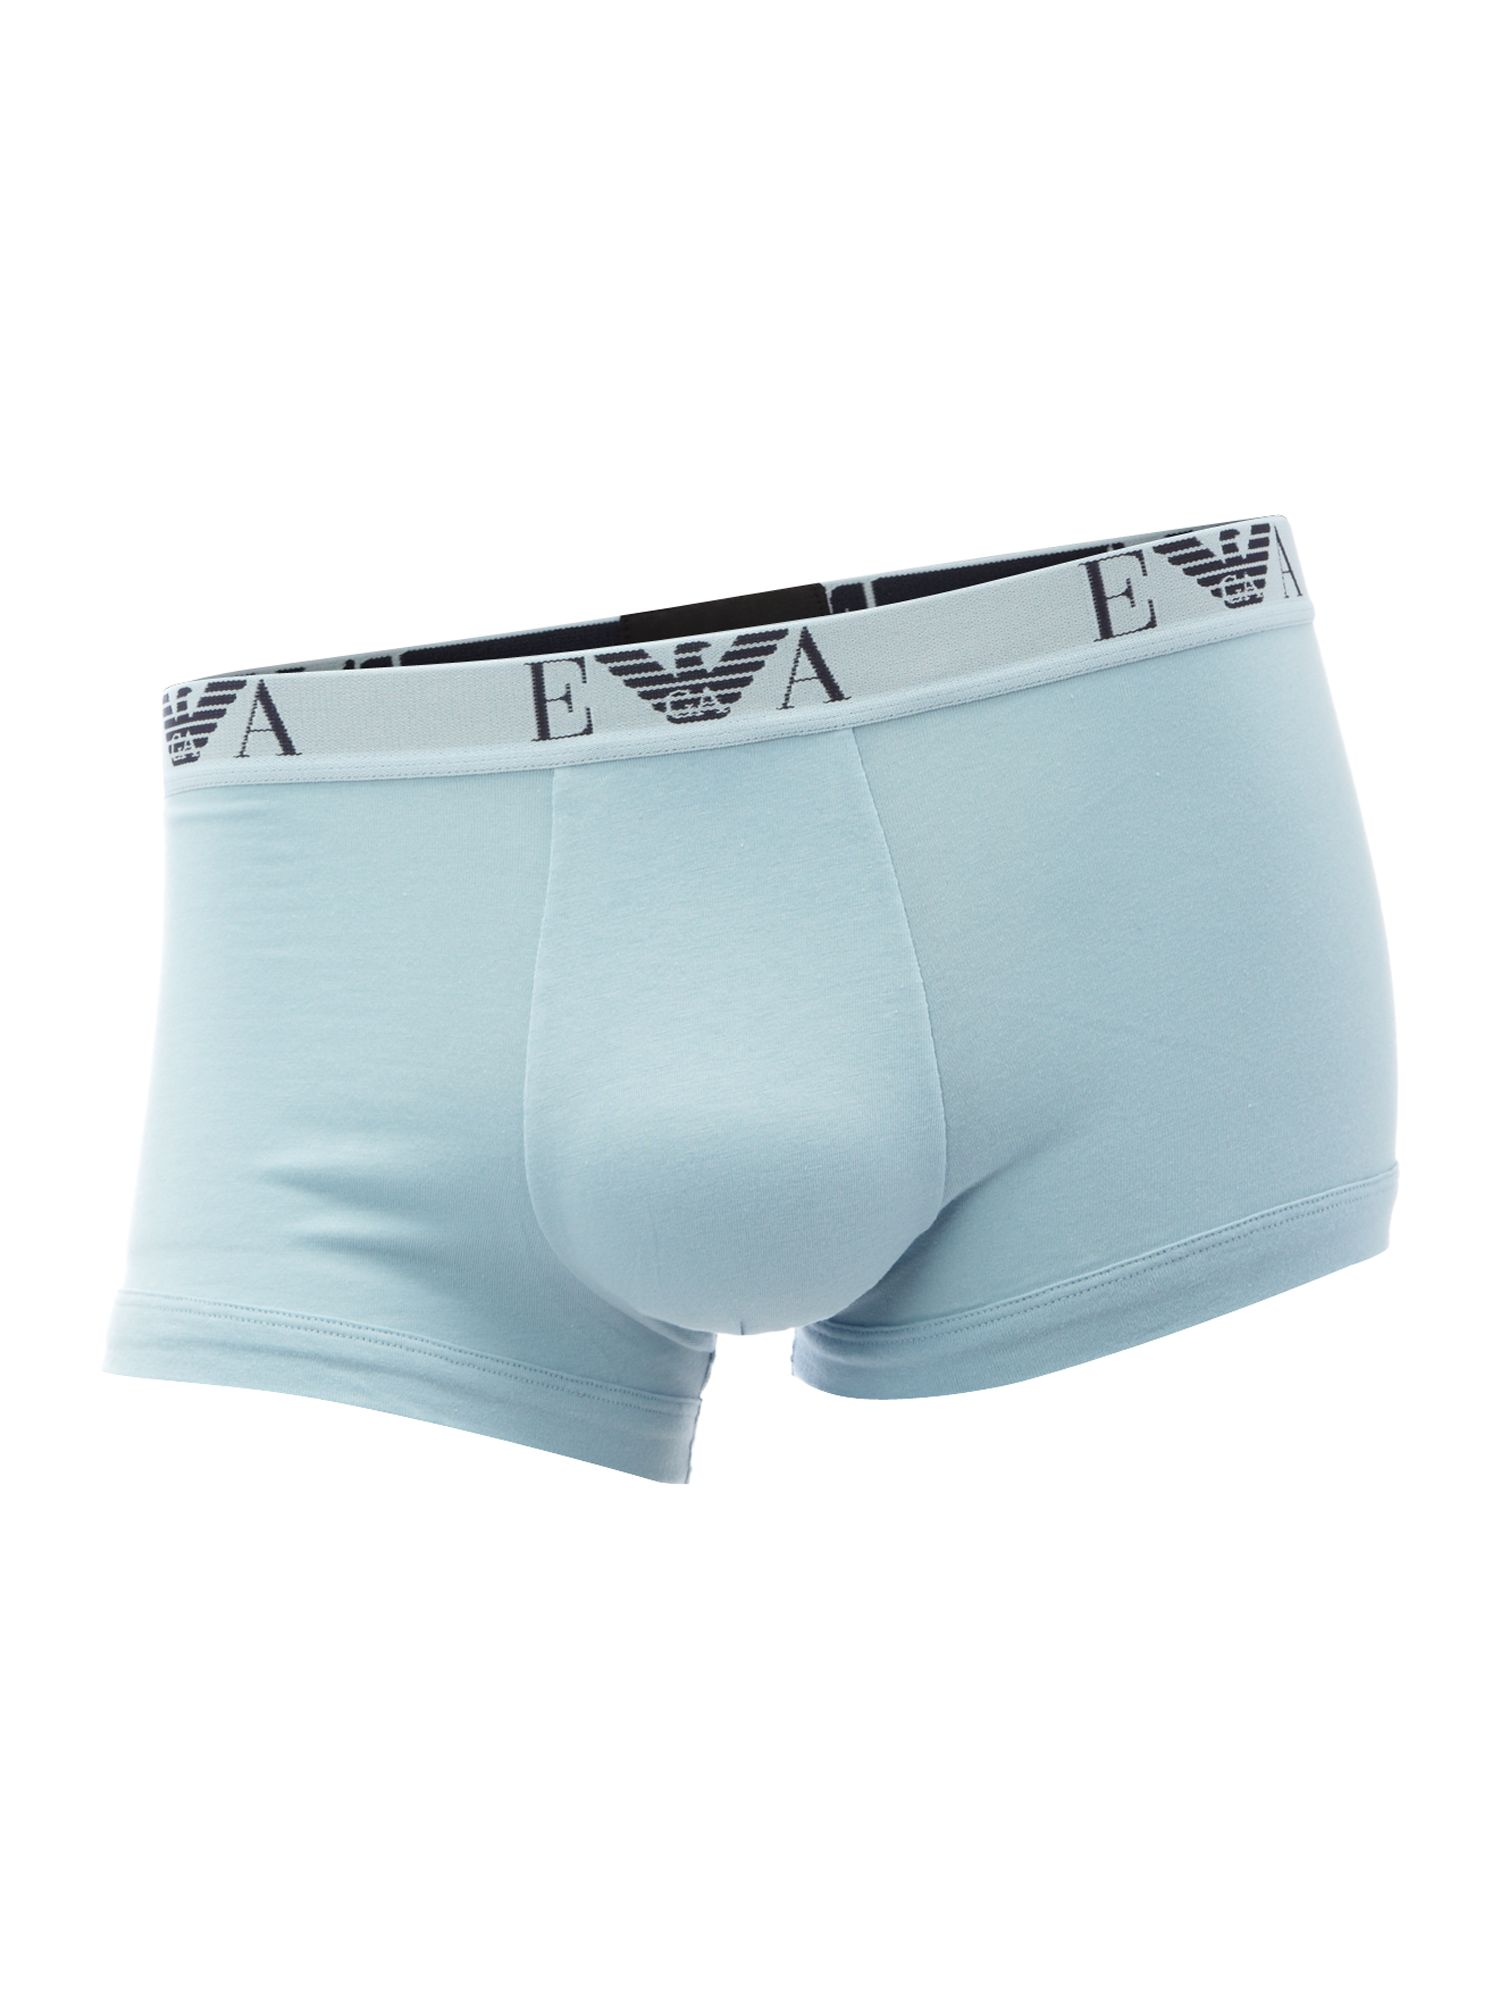 2 pack fashion underwear trunk